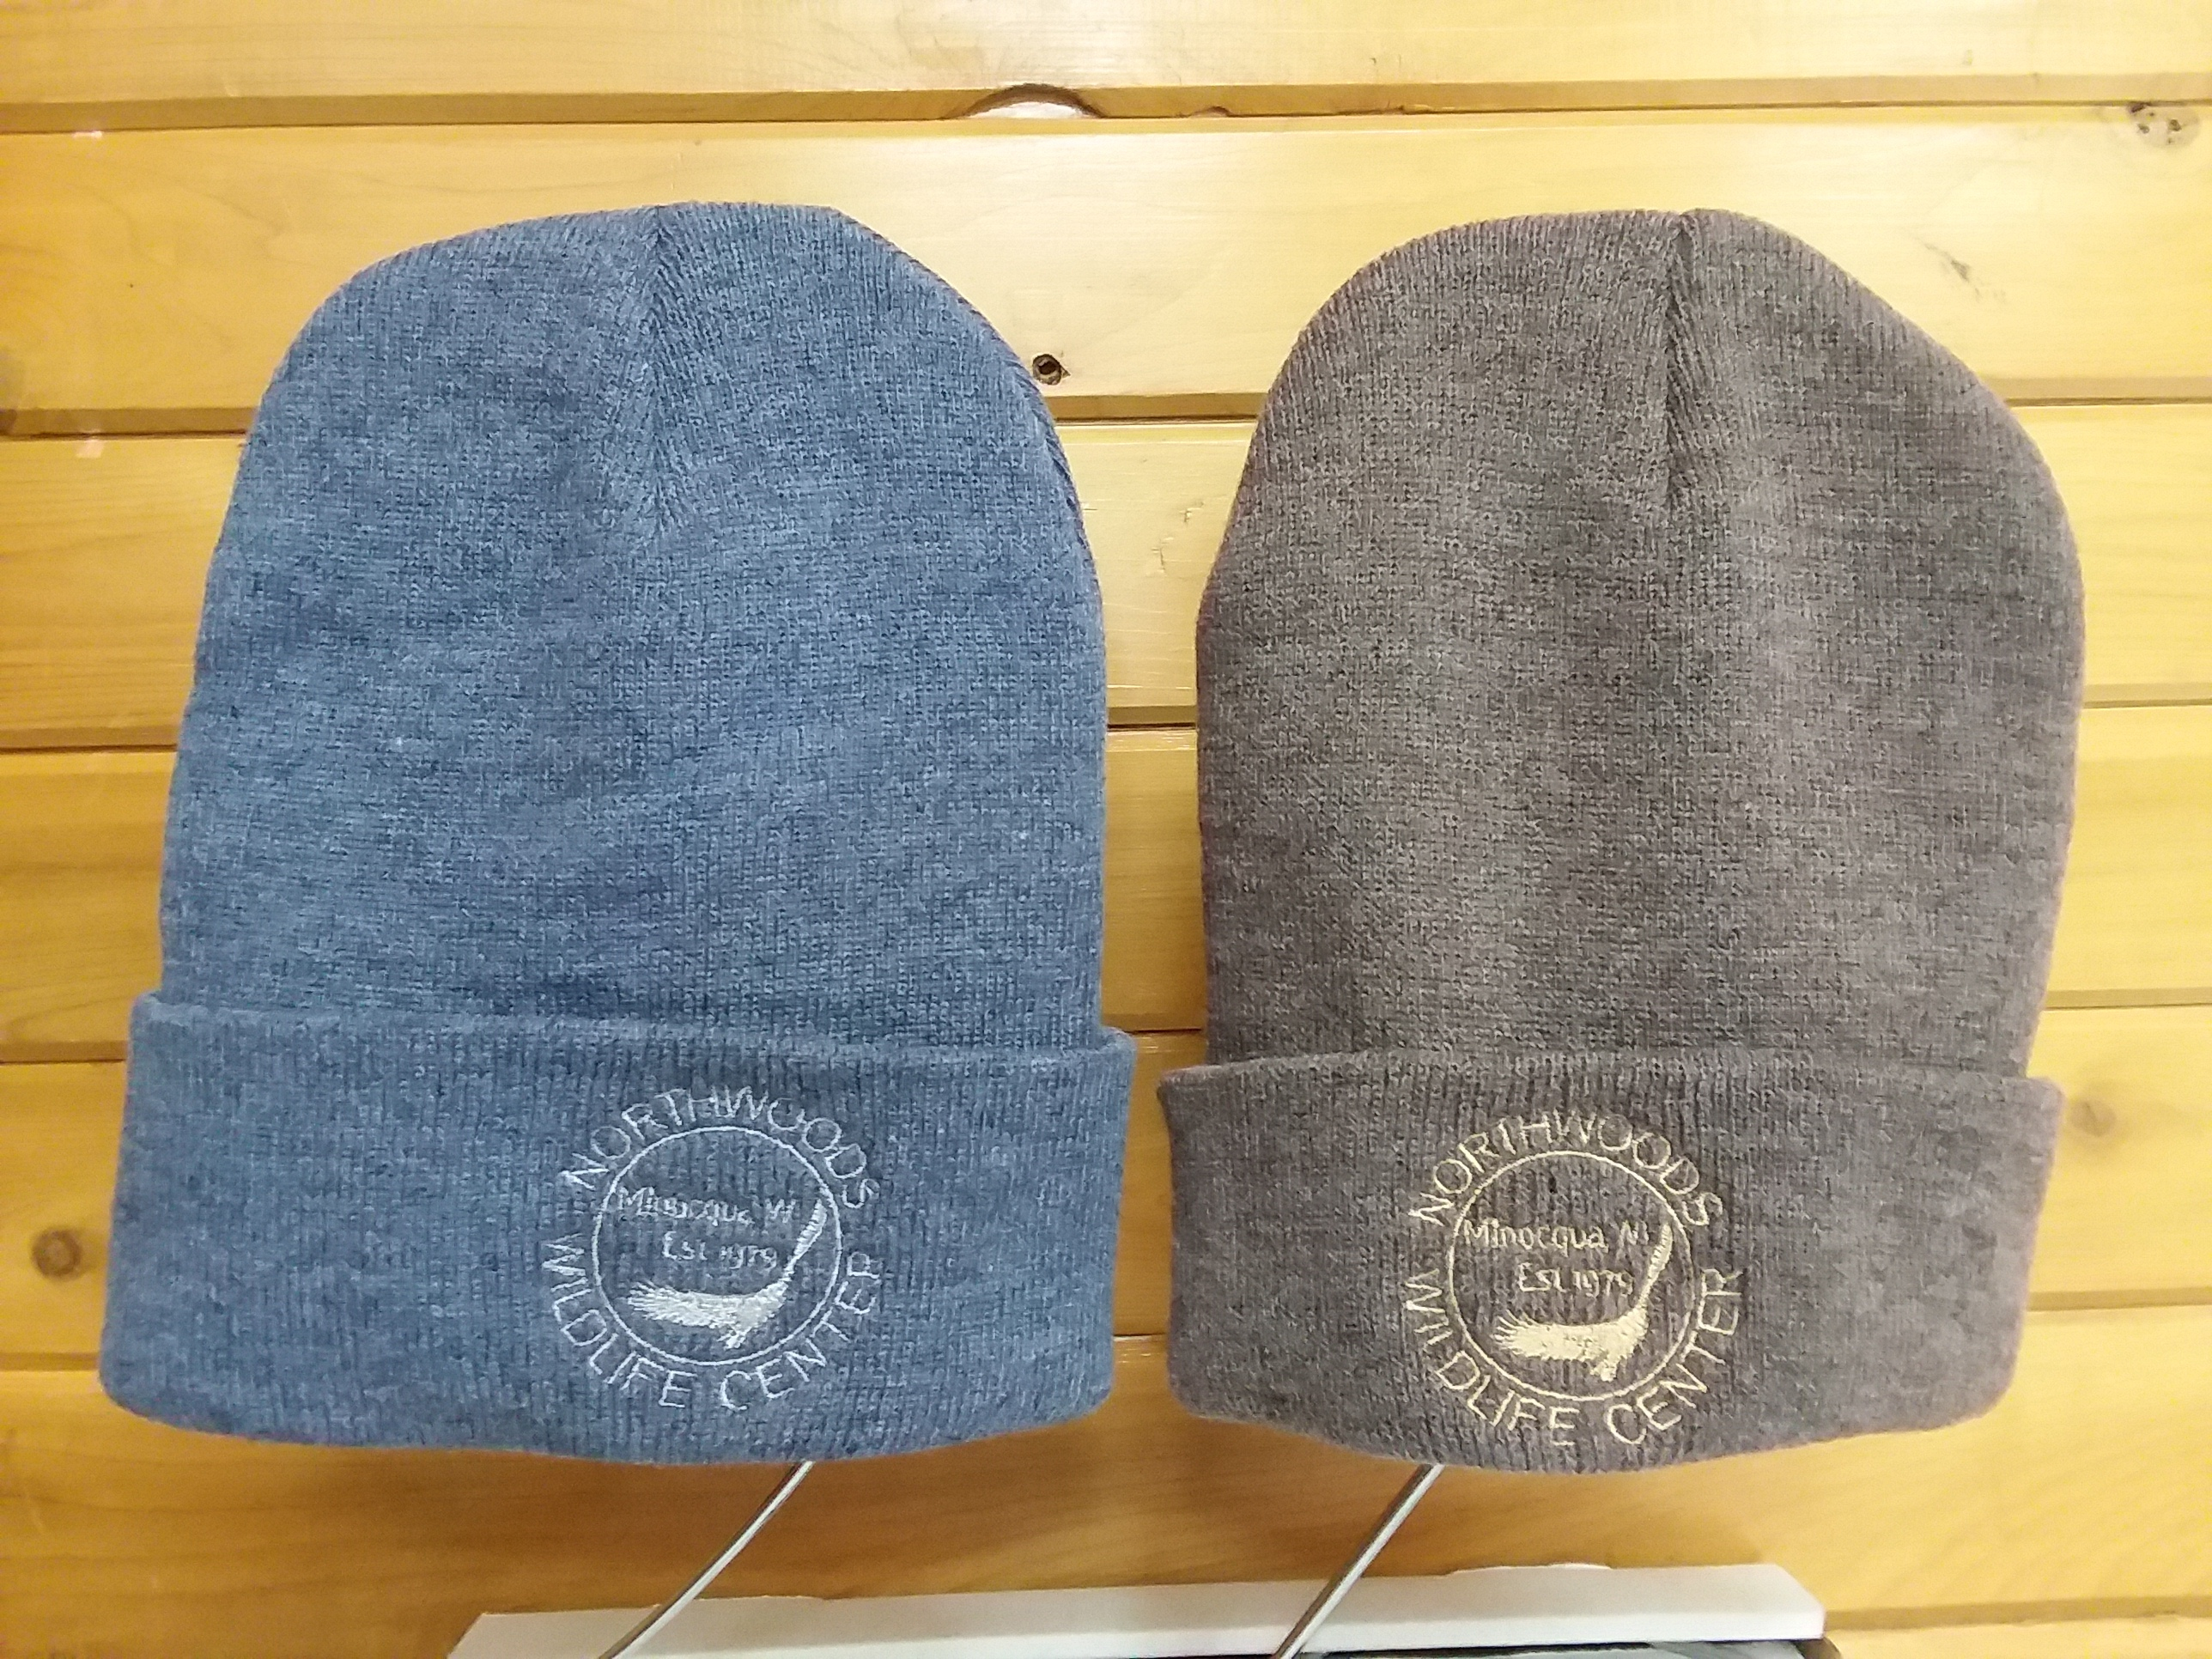 Knit Hat Heather Blue $17 + $4 shipping